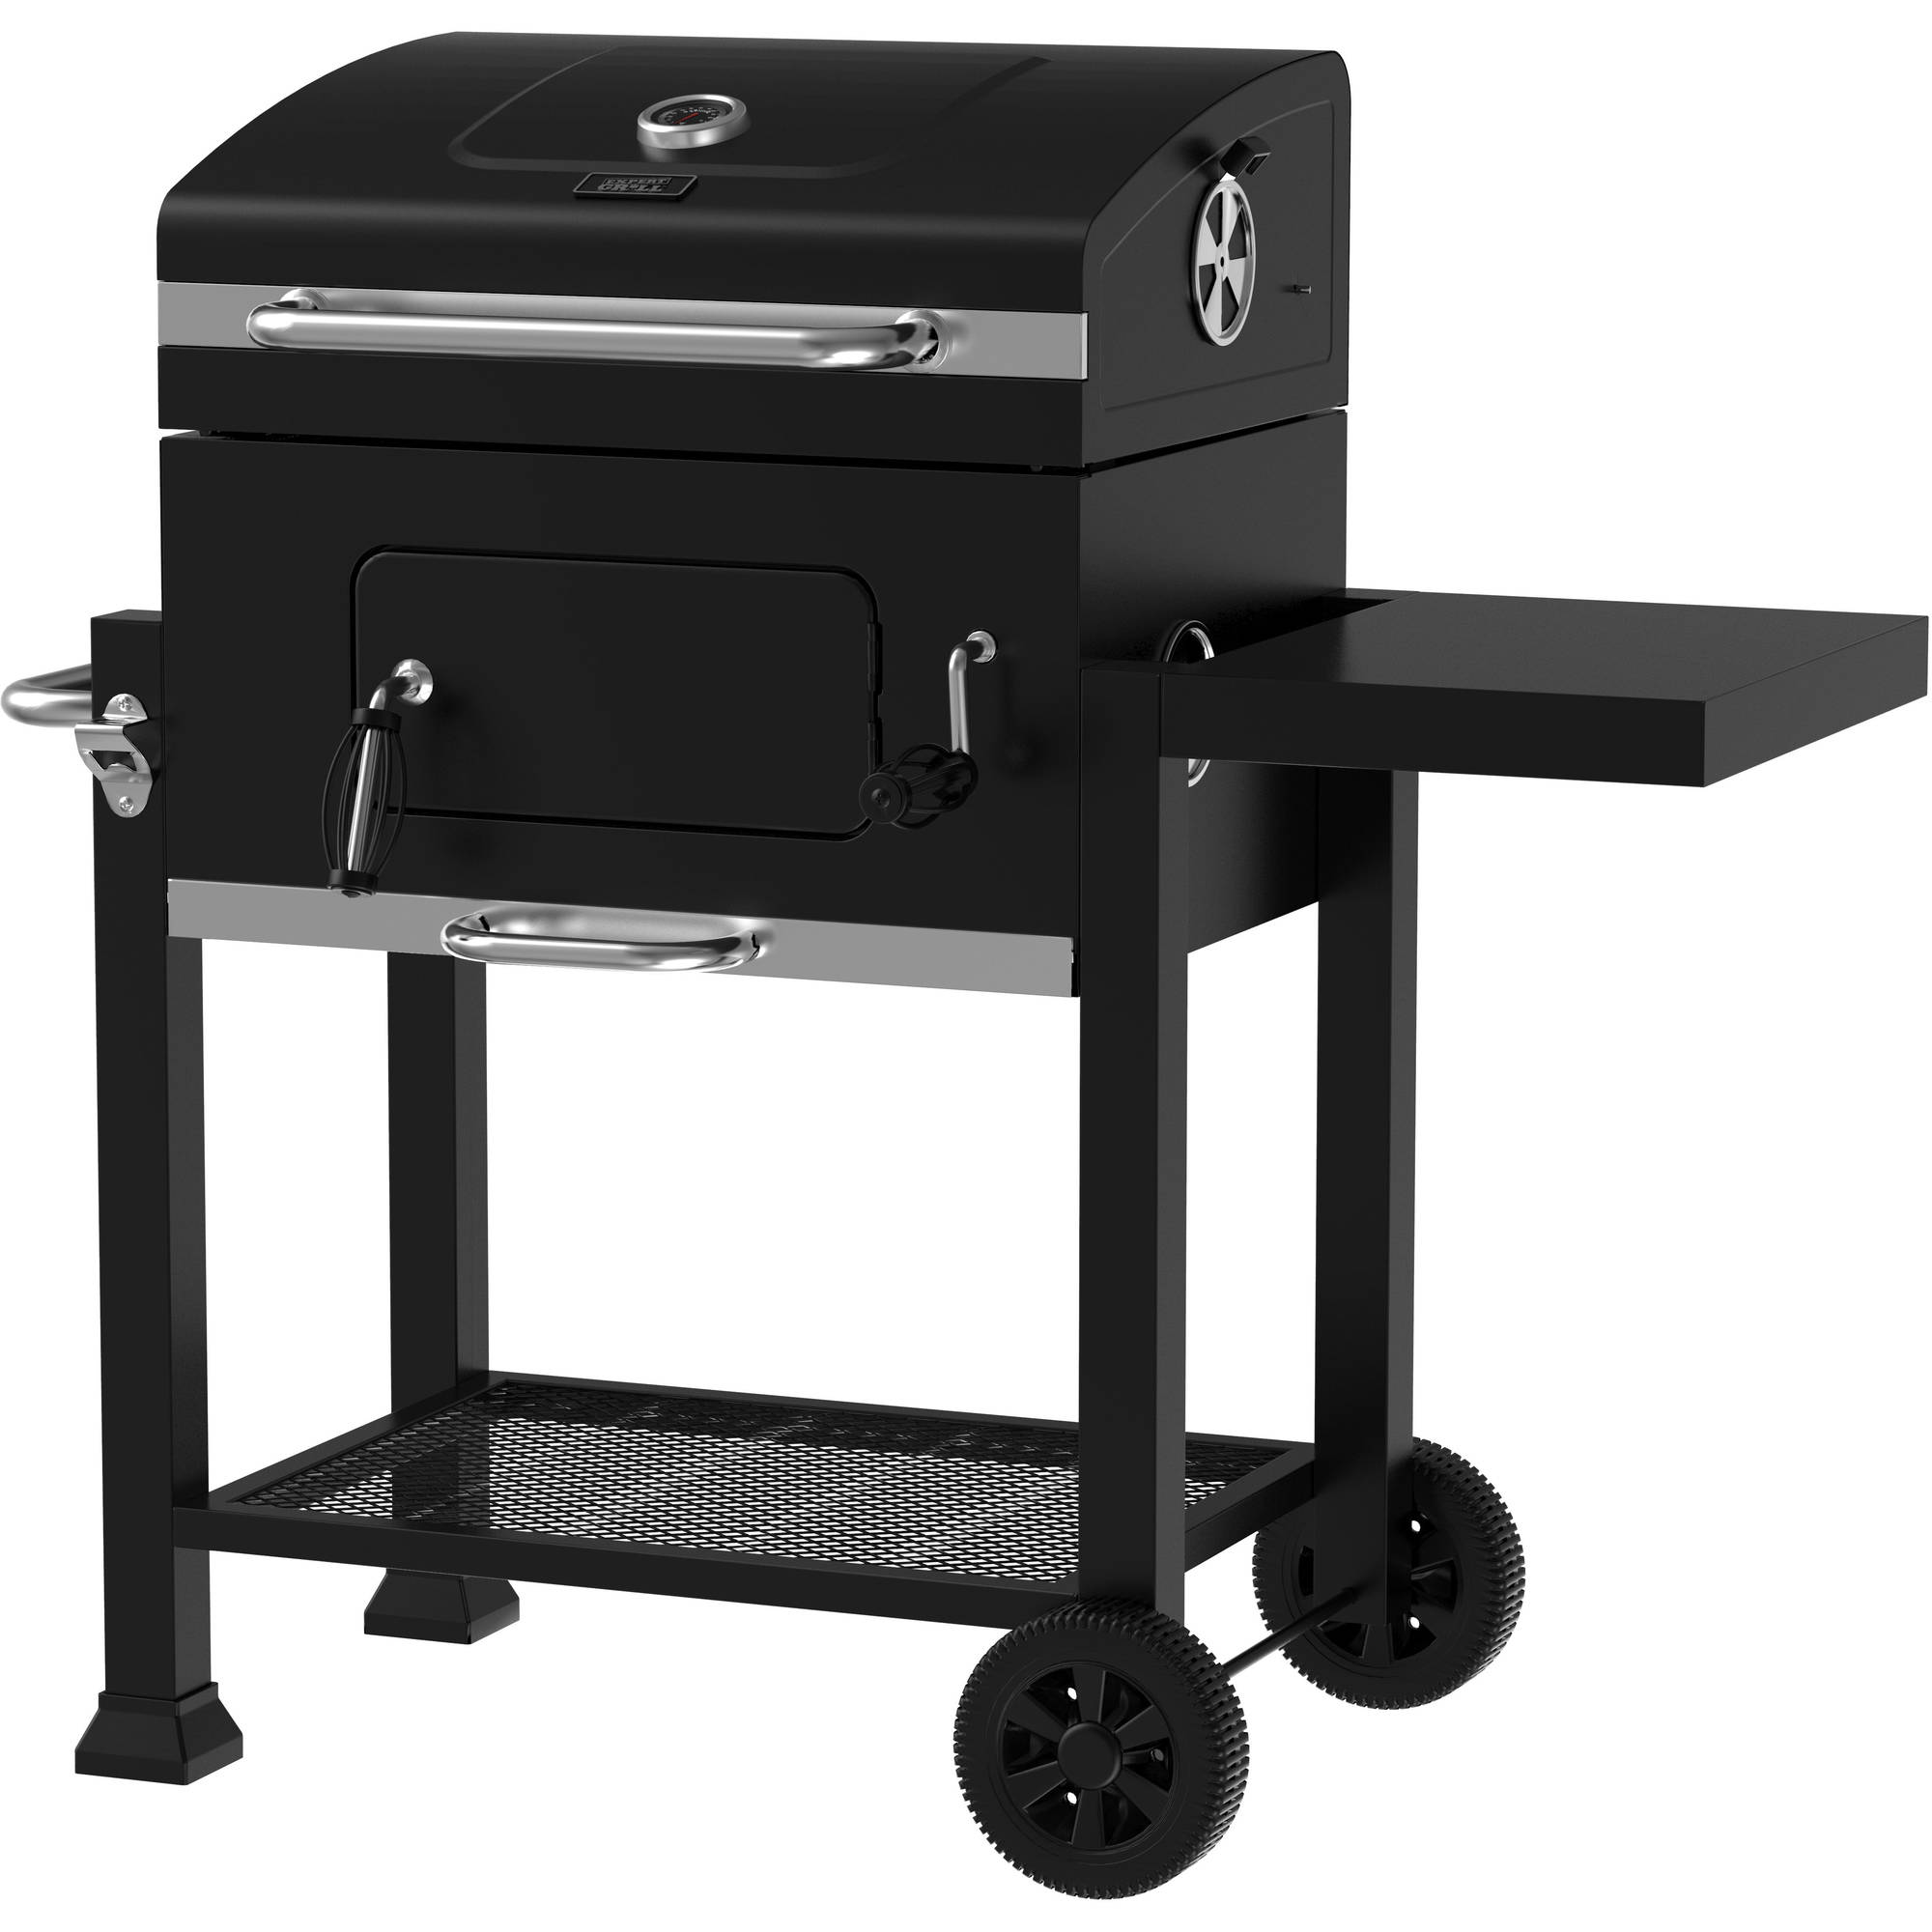 Expert grill heavy duty 24 inch charcoal grill walmart fandeluxe Choice Image